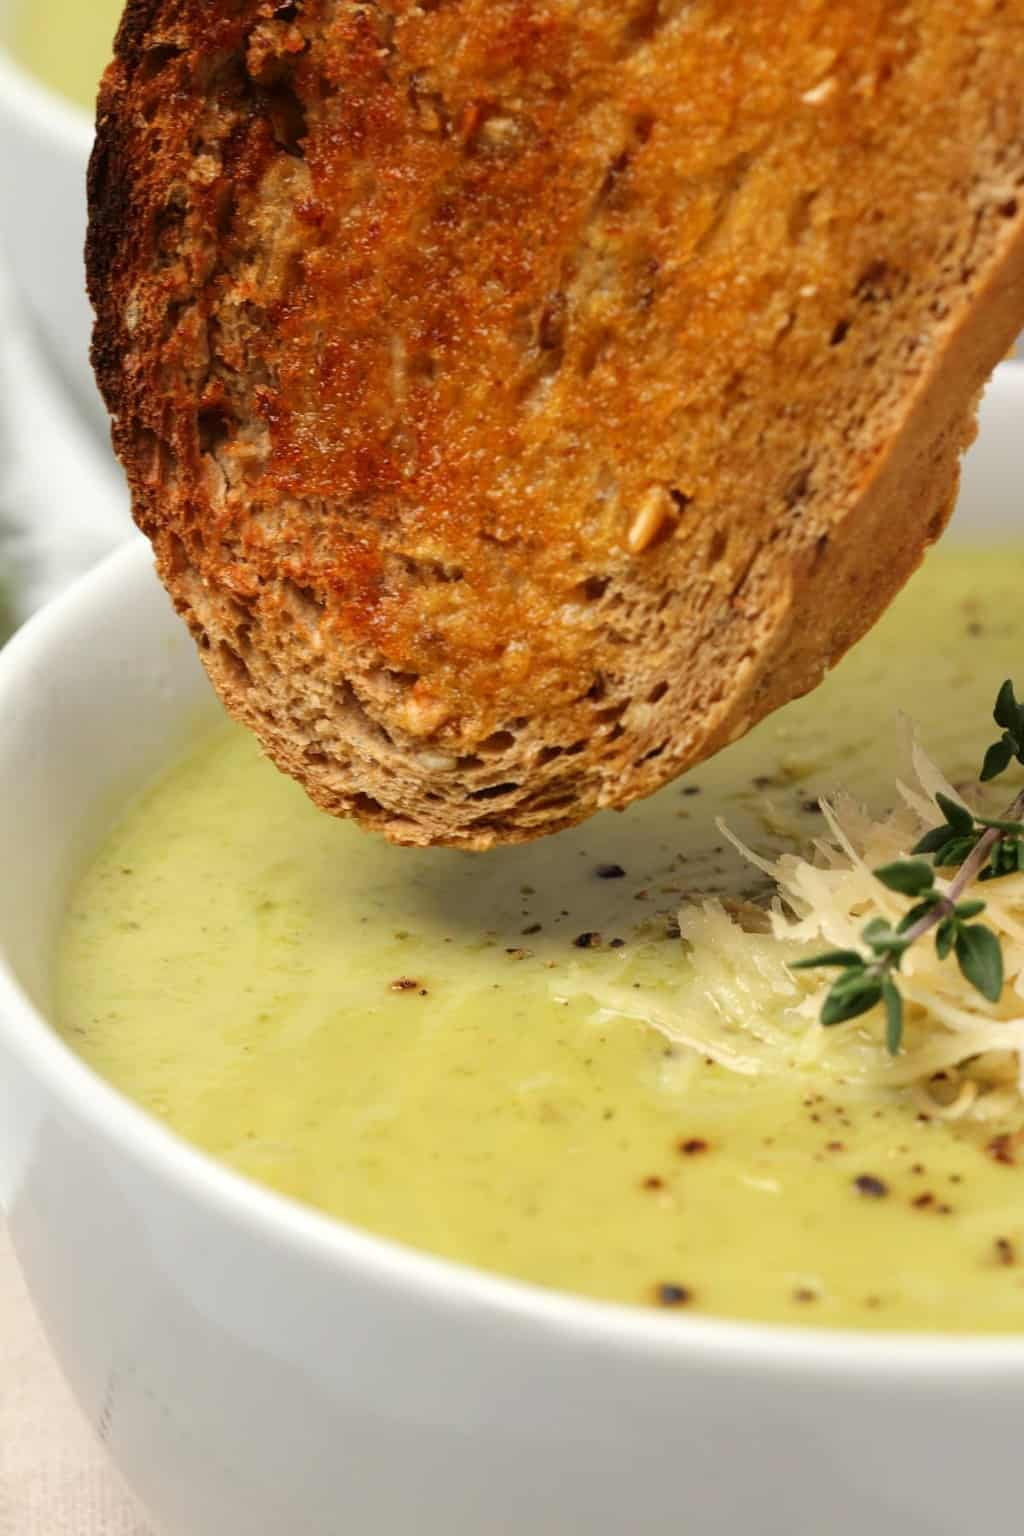 Vegan zucchini soup topped with vegan parmesan and a sprig of fresh thyme in a white bowl with a piece of toasted bread.